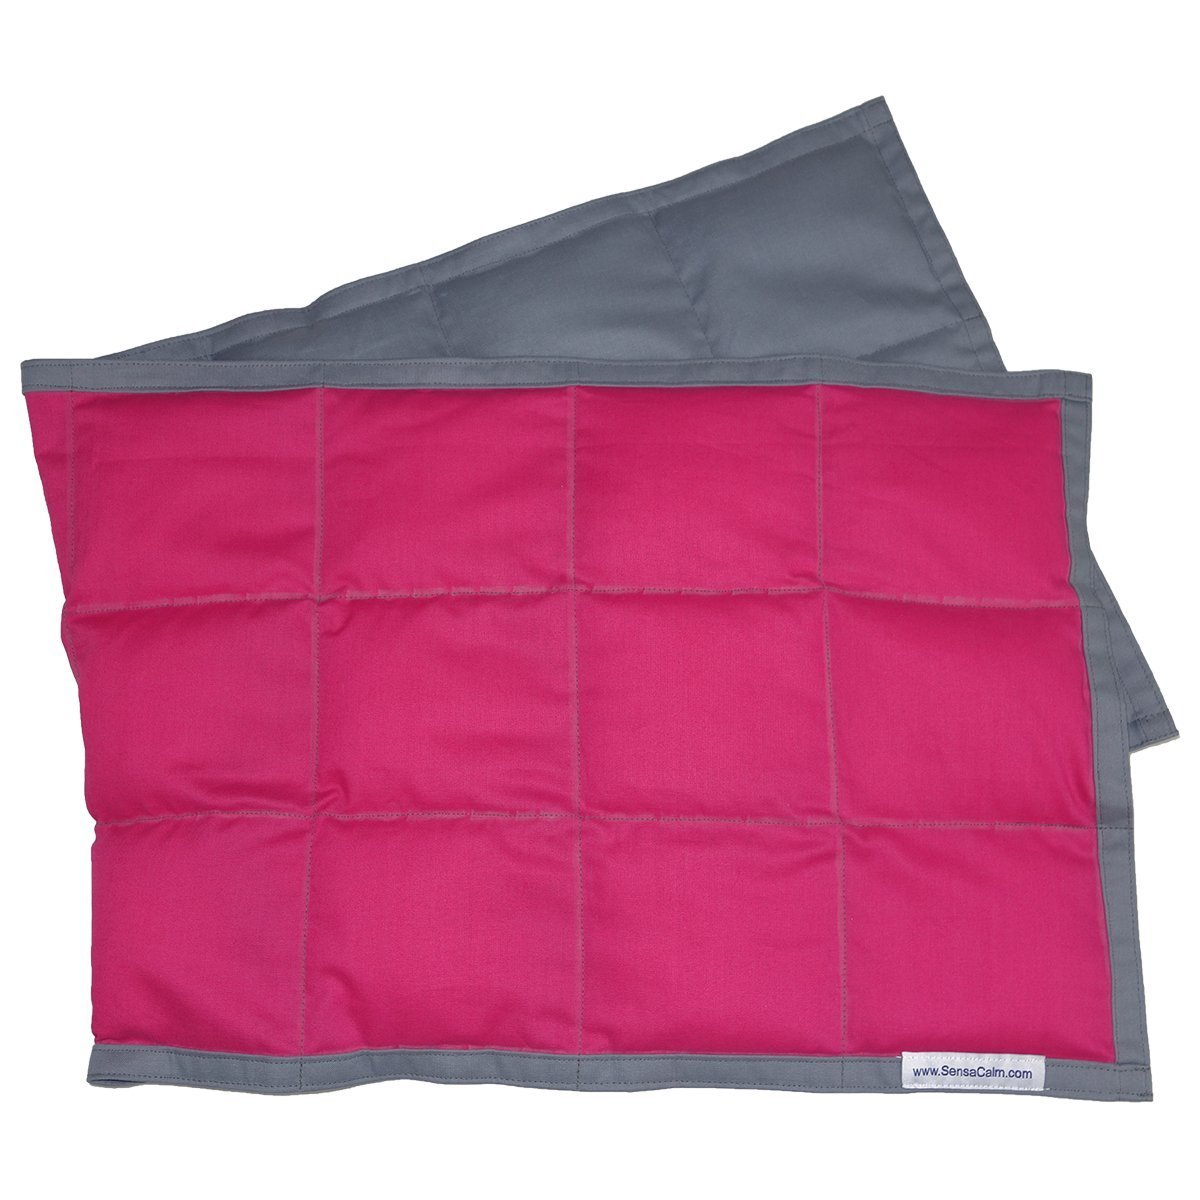 SensaCalm Raspberry w/ Volcanic Gray - Weighted Wrap (5 lb)